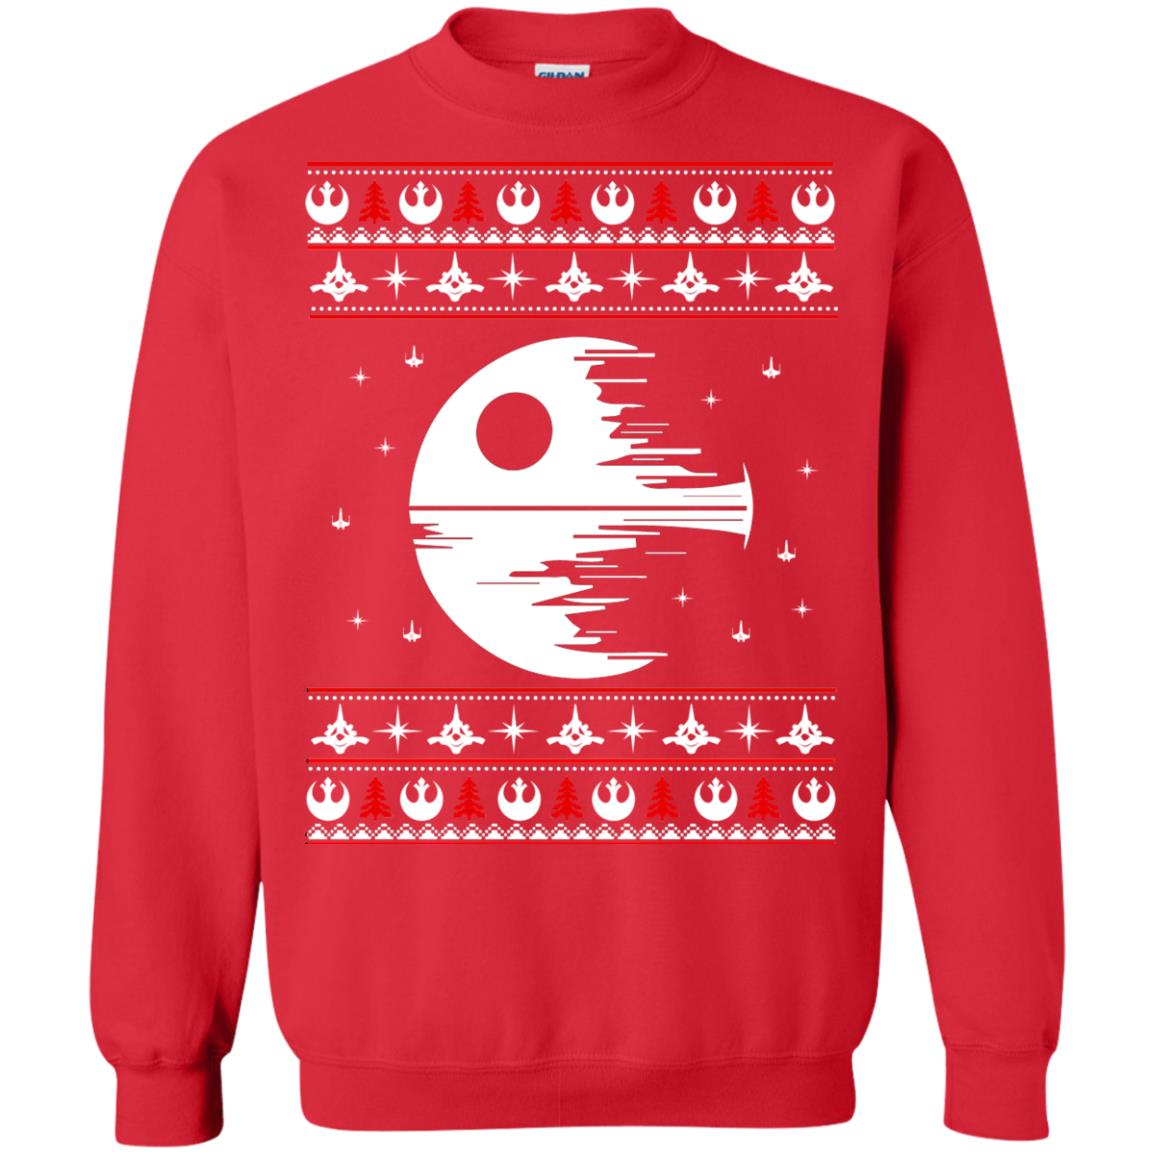 image 1778 - Star Wars Death Star Darth Vader Ugly Sweater, Shirt